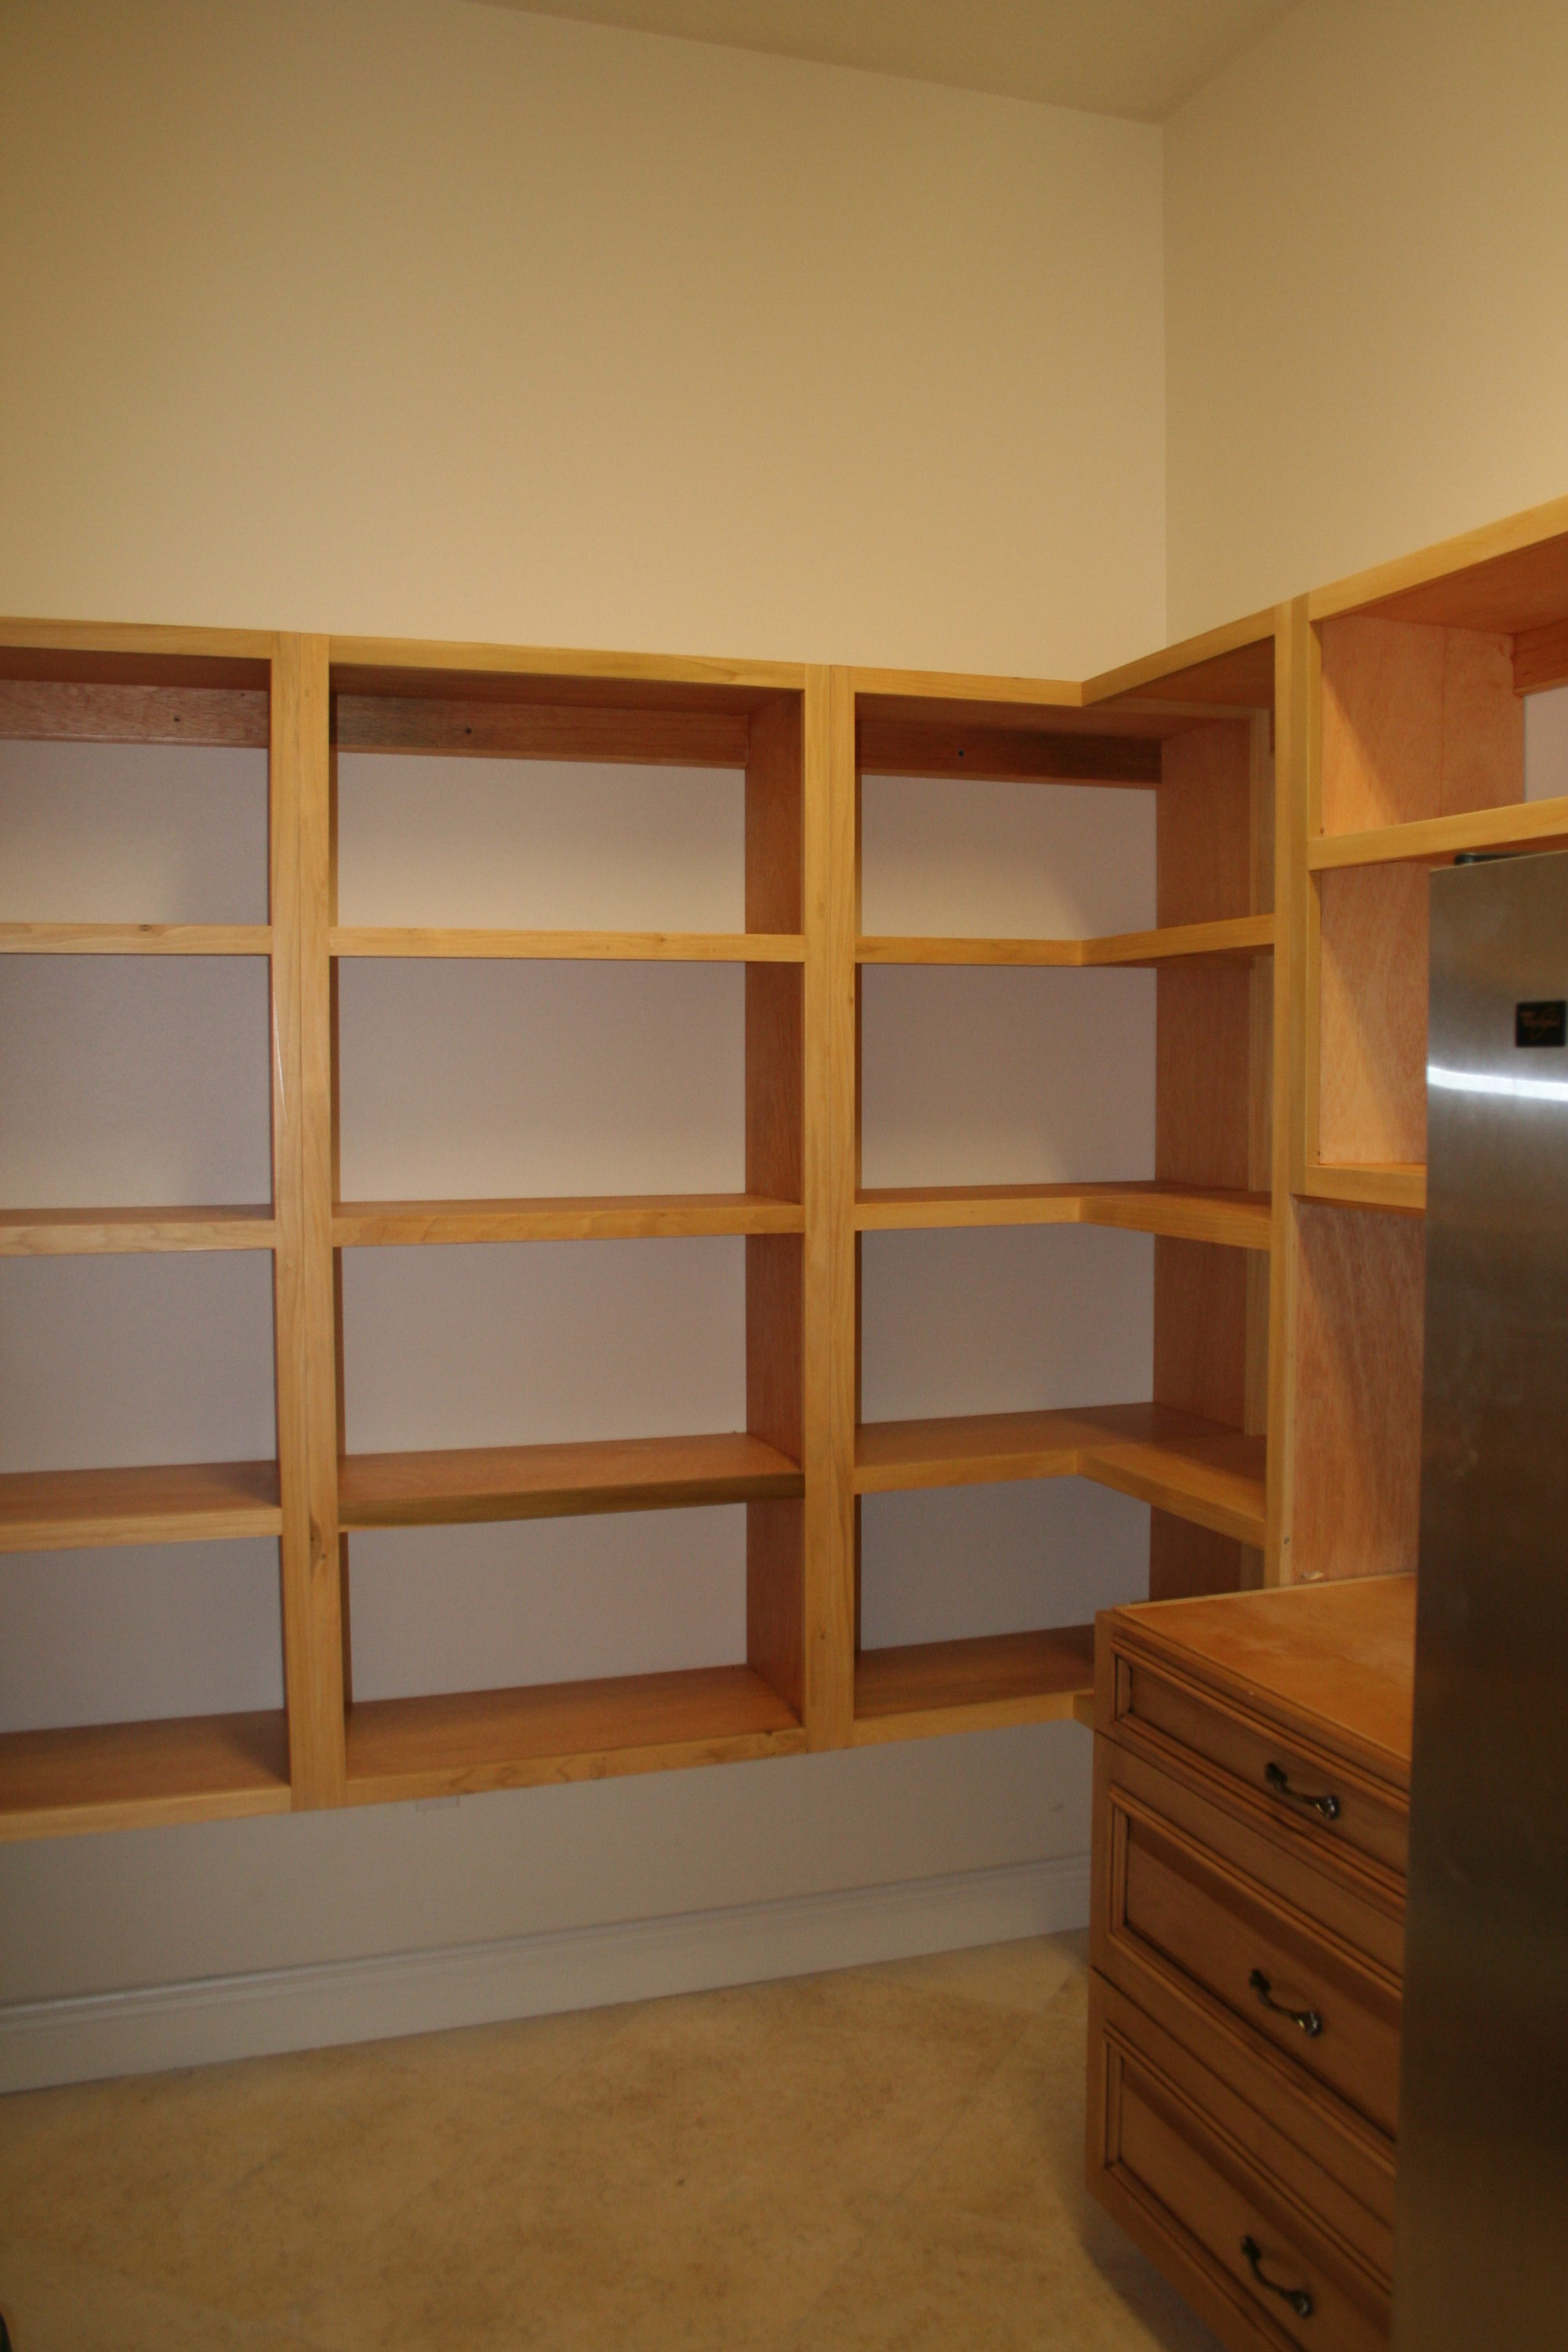 Pantry shelving systems wood